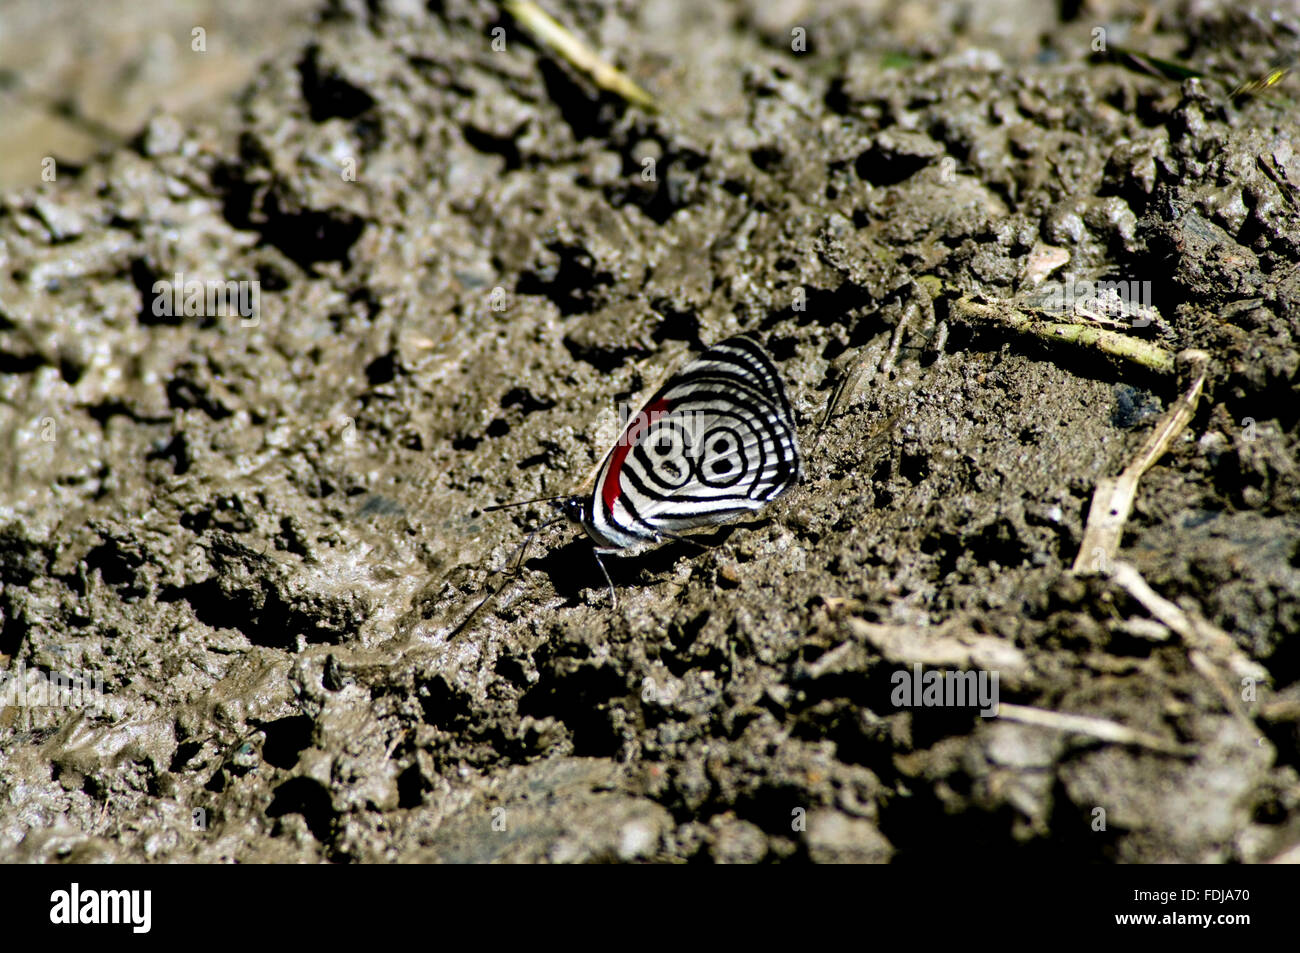 Diaethria anna butterfly in the Bolivian jungle with a clear number 88 as a design on its wing, perched on the ground. - Stock Image